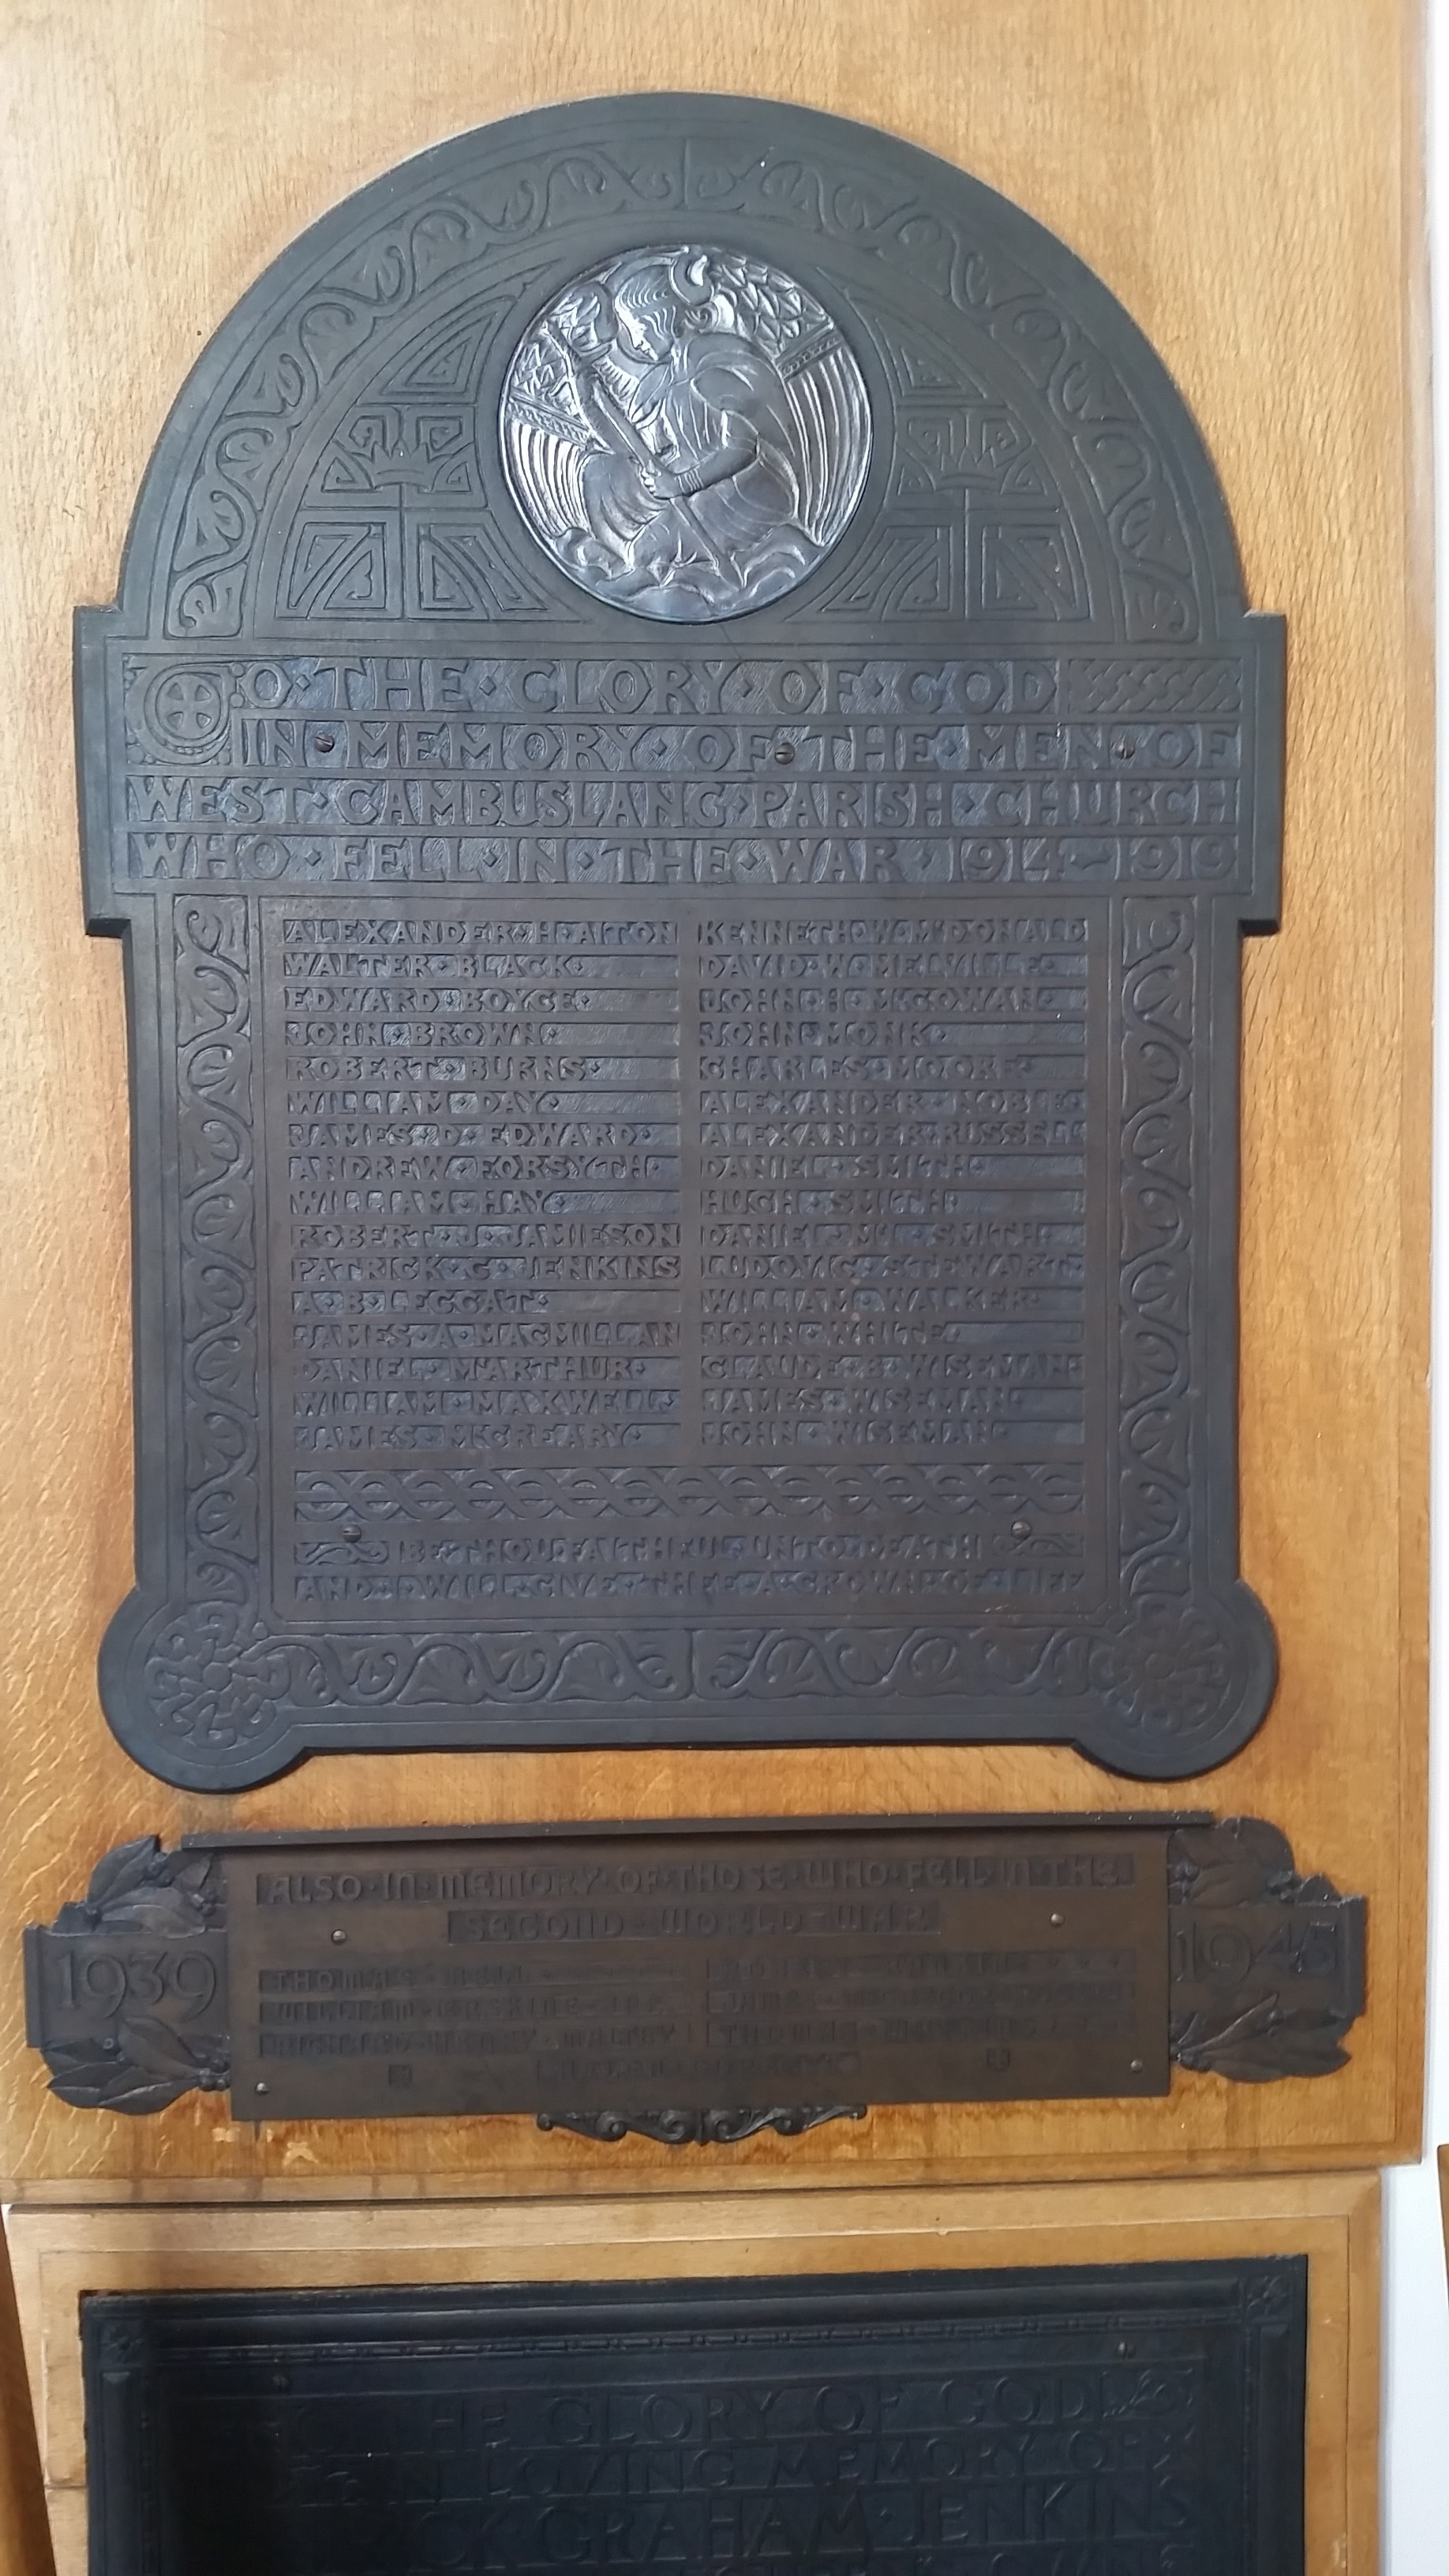 Memorial– Plaque from West Cambuslang Parish Church with inscription. Contributed by E. Edwards 18thbattalioncef.wordpress.com